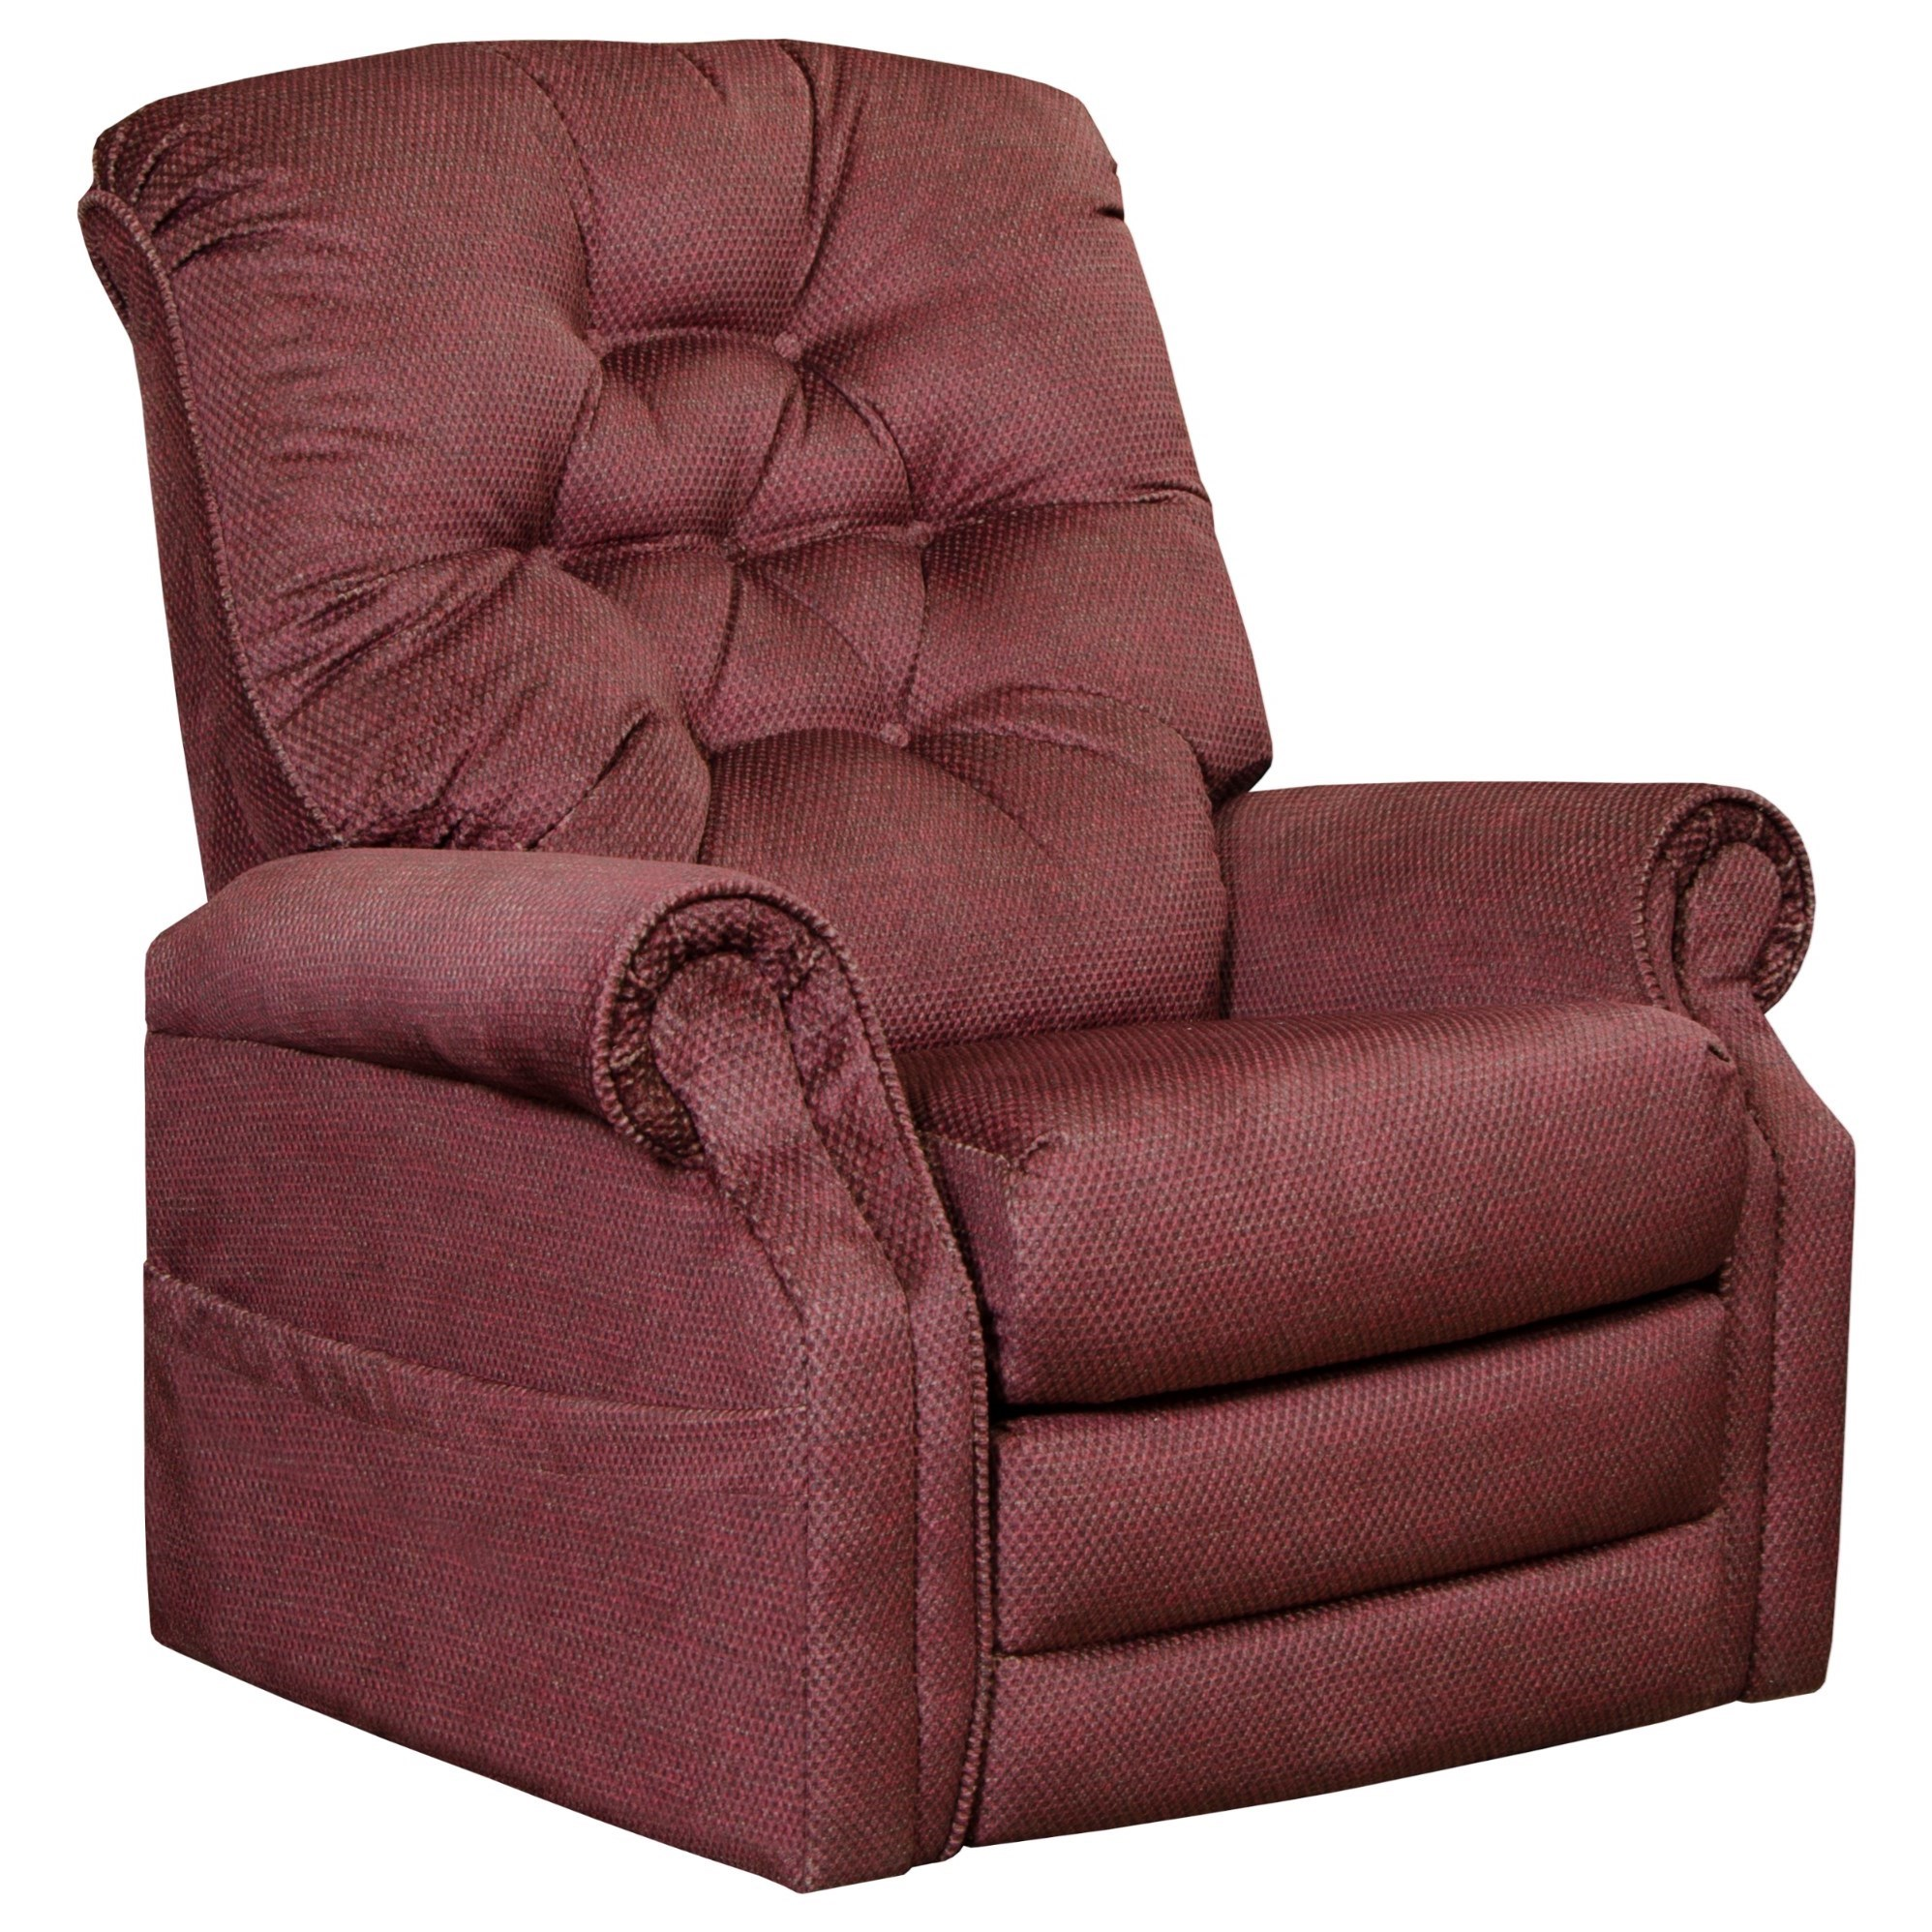 """4824 """"Pow'r Lift"""" Recliner by Catnapper at Value City Furniture"""